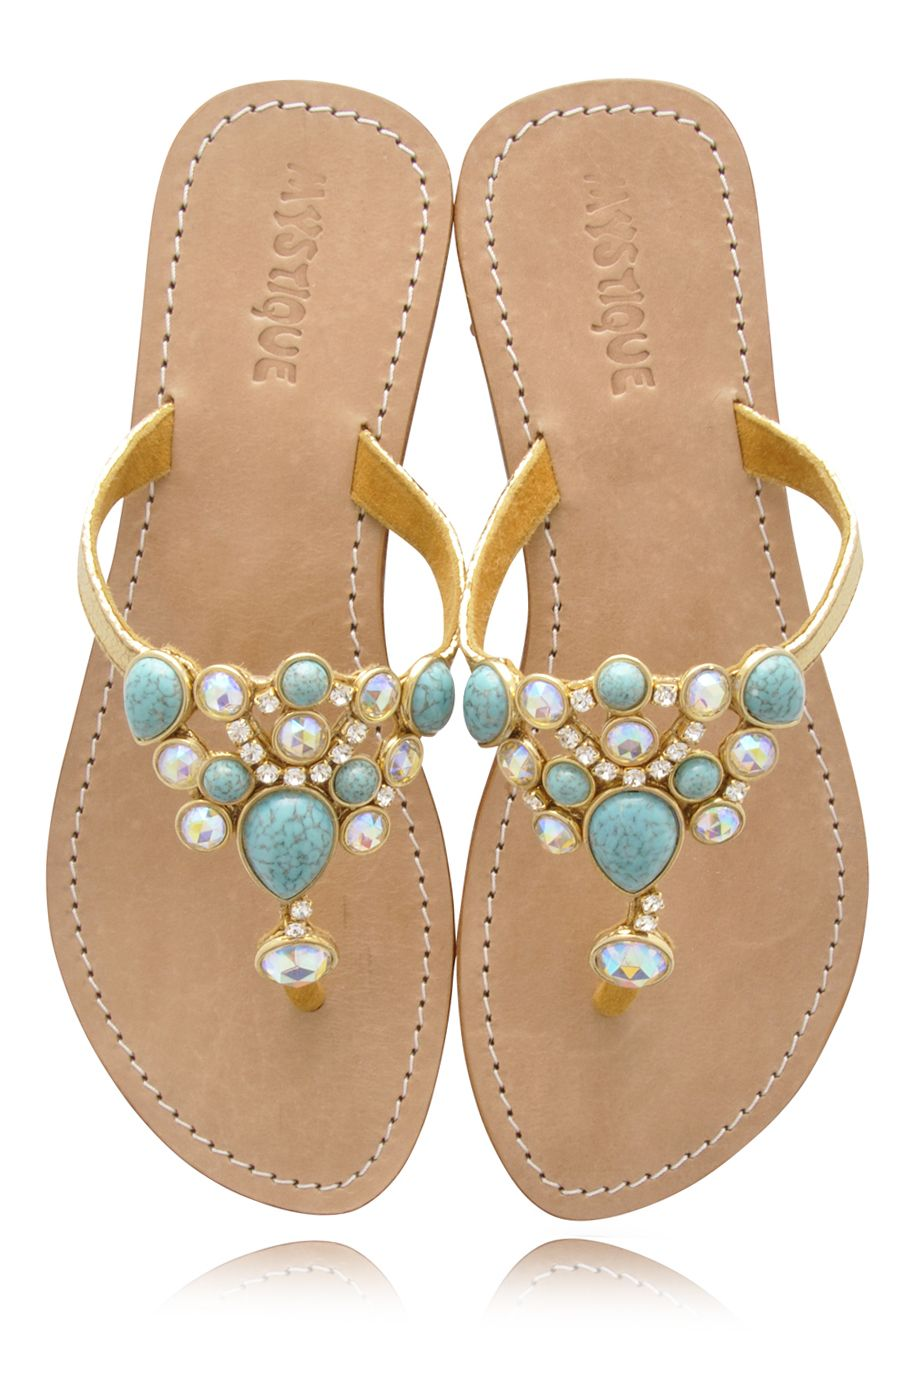 7fcefe7cd17e8b Love these dressy sandals